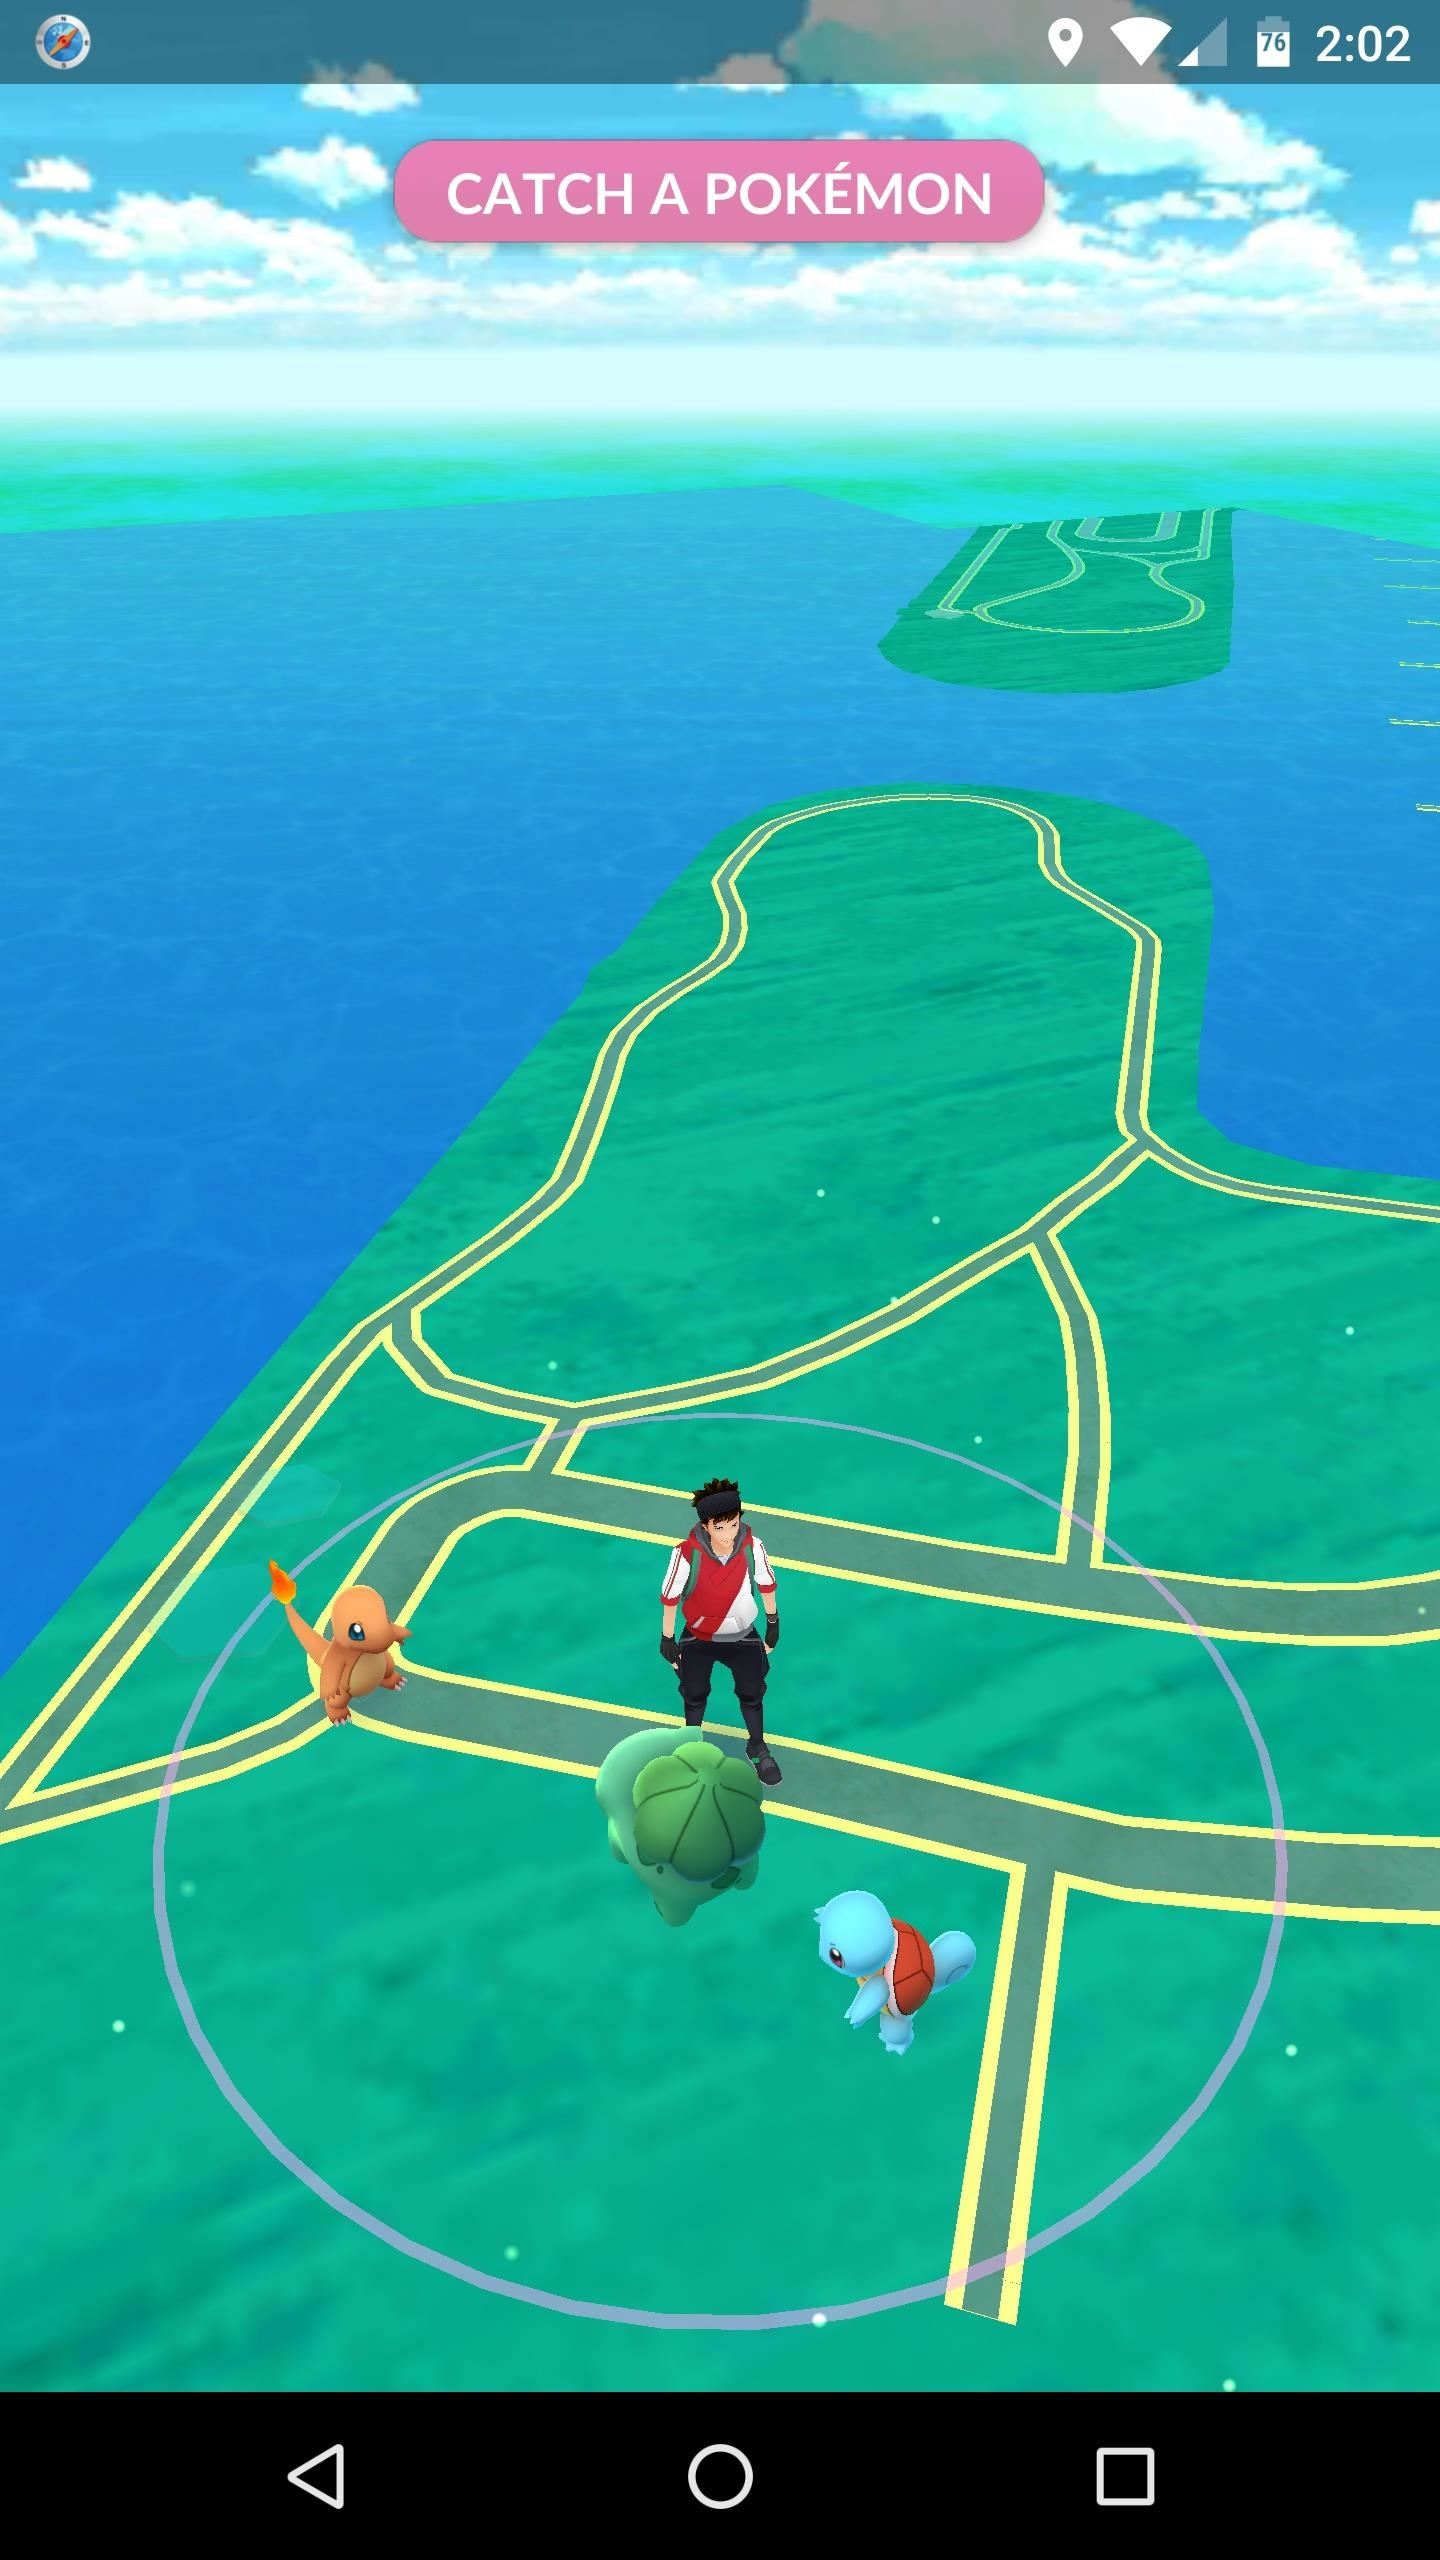 How to Cheat at Pokémon GO Without Getting Banned « Mobile AR News